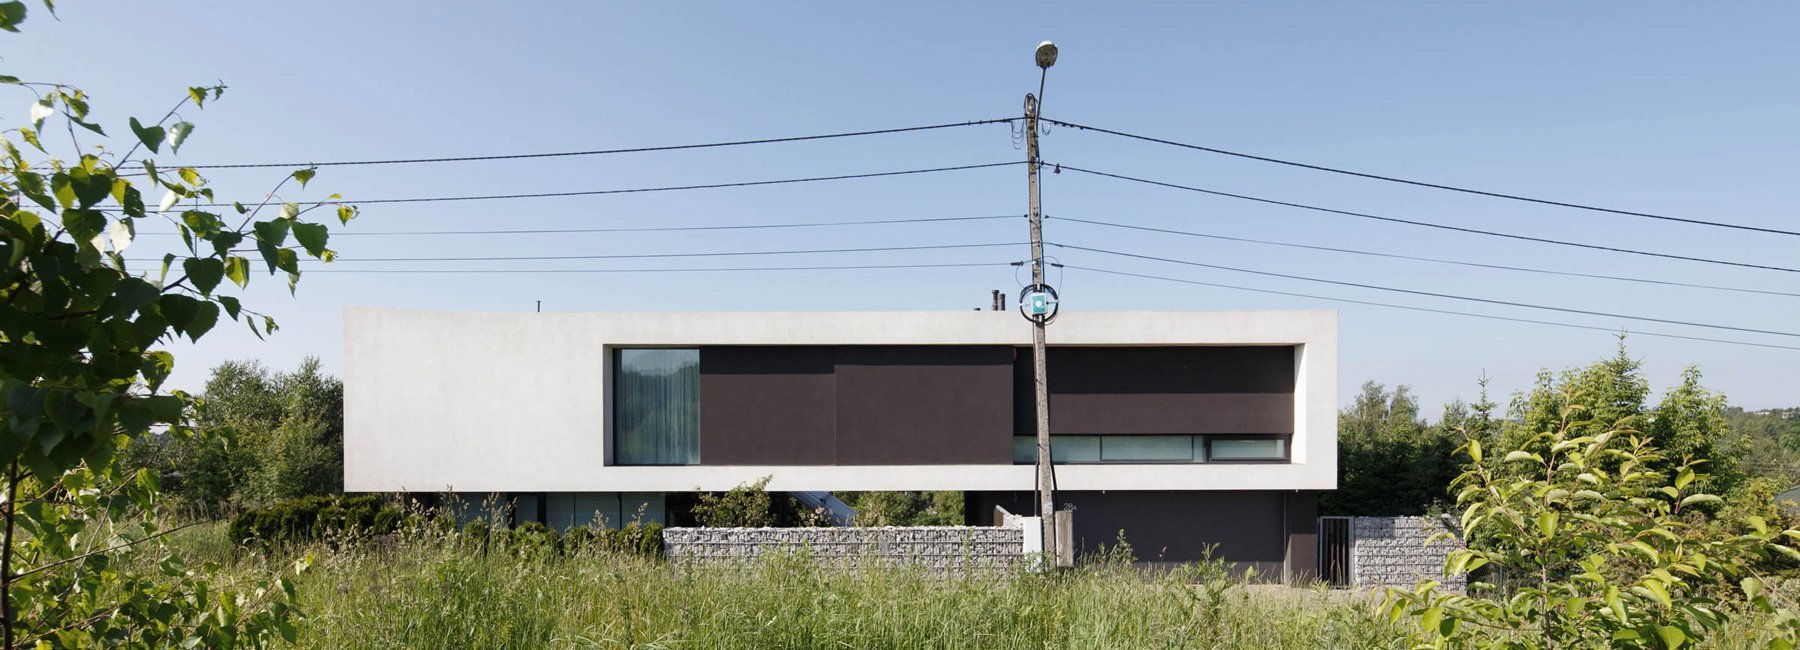 RS+ Robert Skitek's family's house in Poland